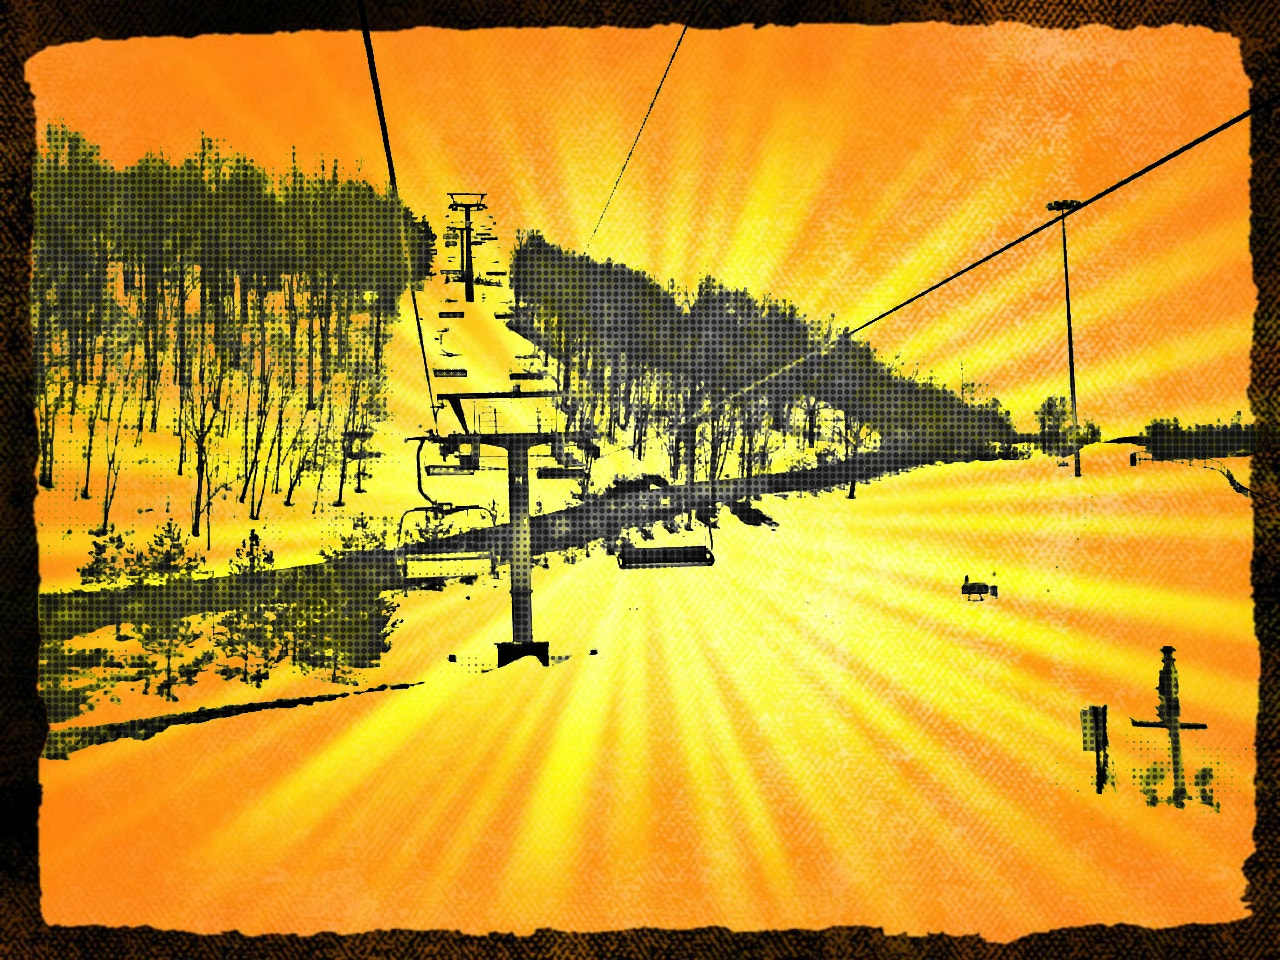 Photograph ski by S. S. on 500px